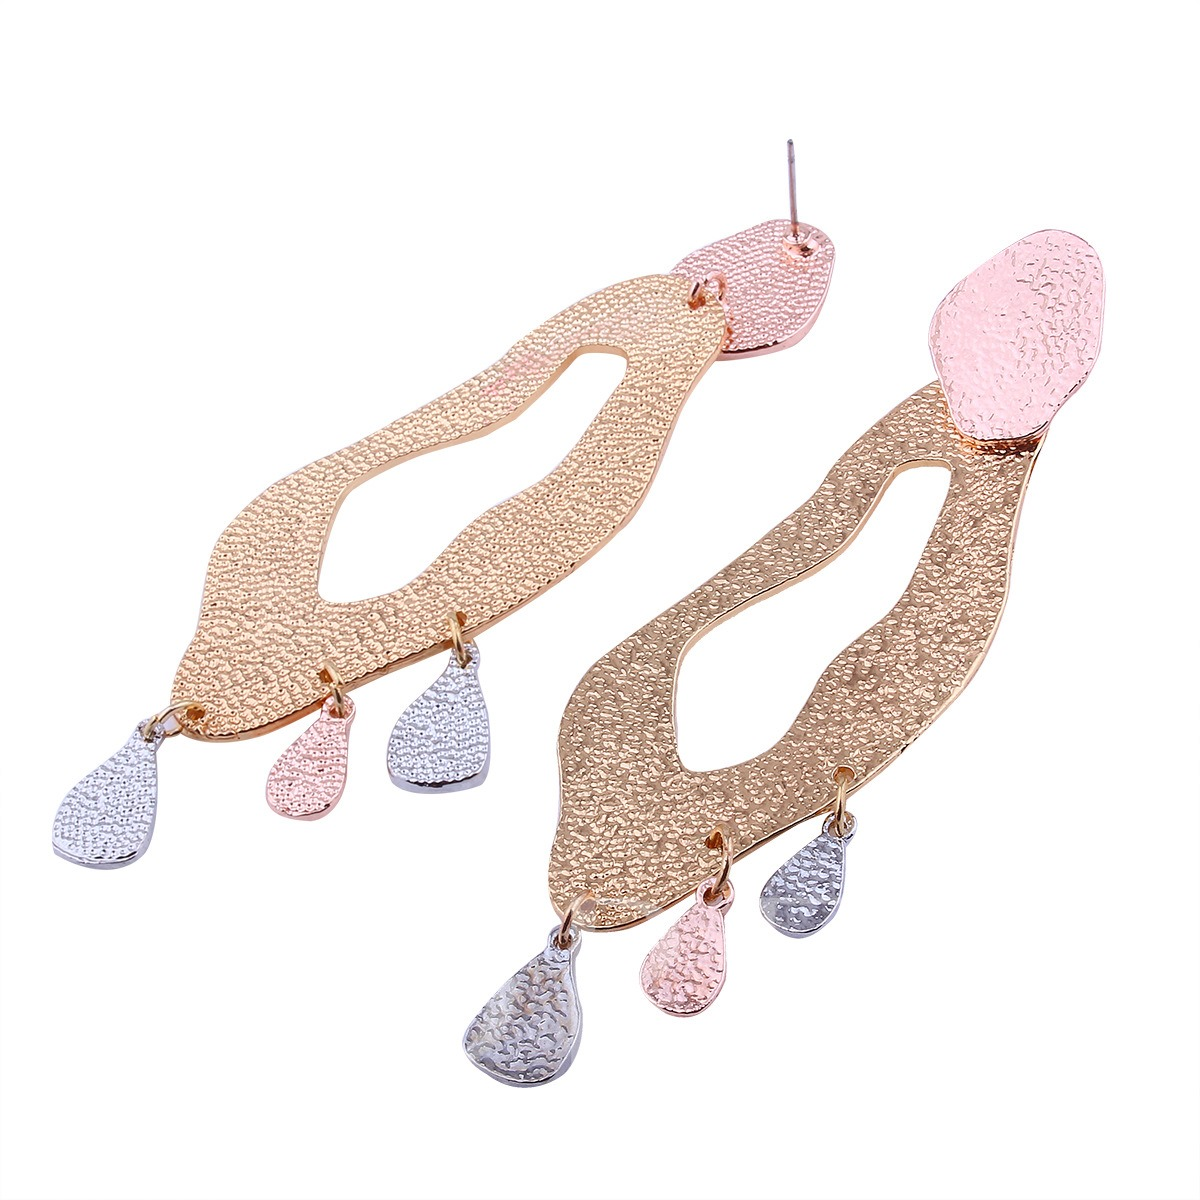 Irregular Geometric Hollow Out Earrings